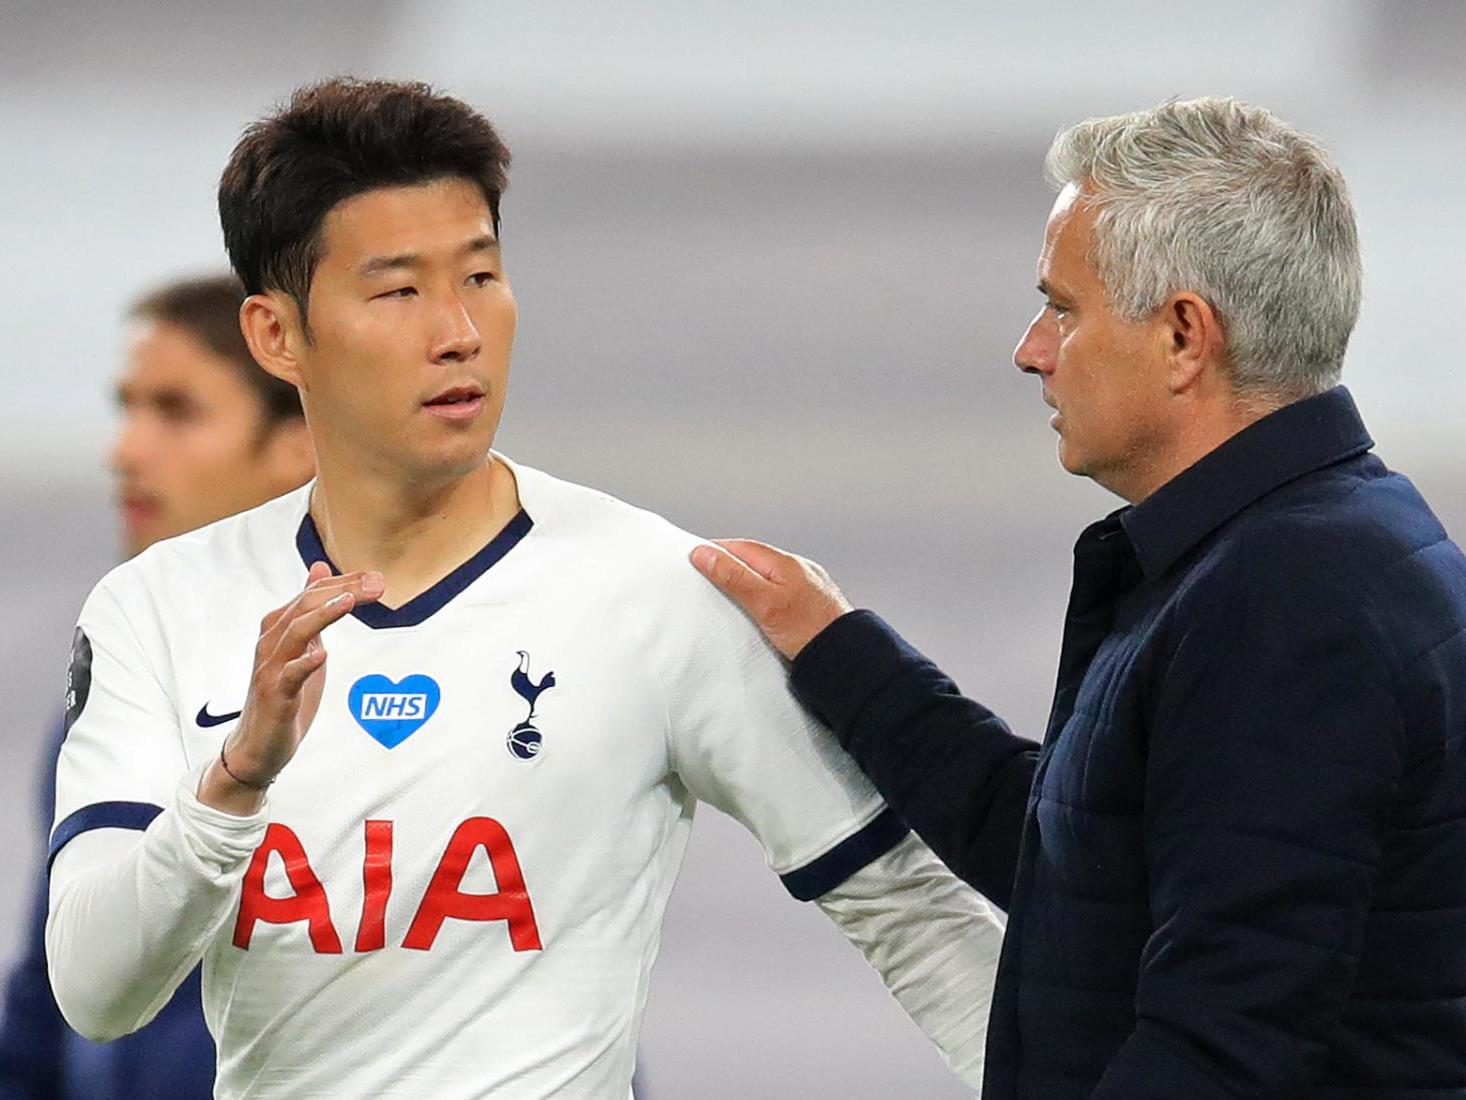 'That's beautiful!' – Jose Mourinho thrilled after Tottenham teammates Hugo Lloris and Son Heung-min engage in furious half-time row - The Independent